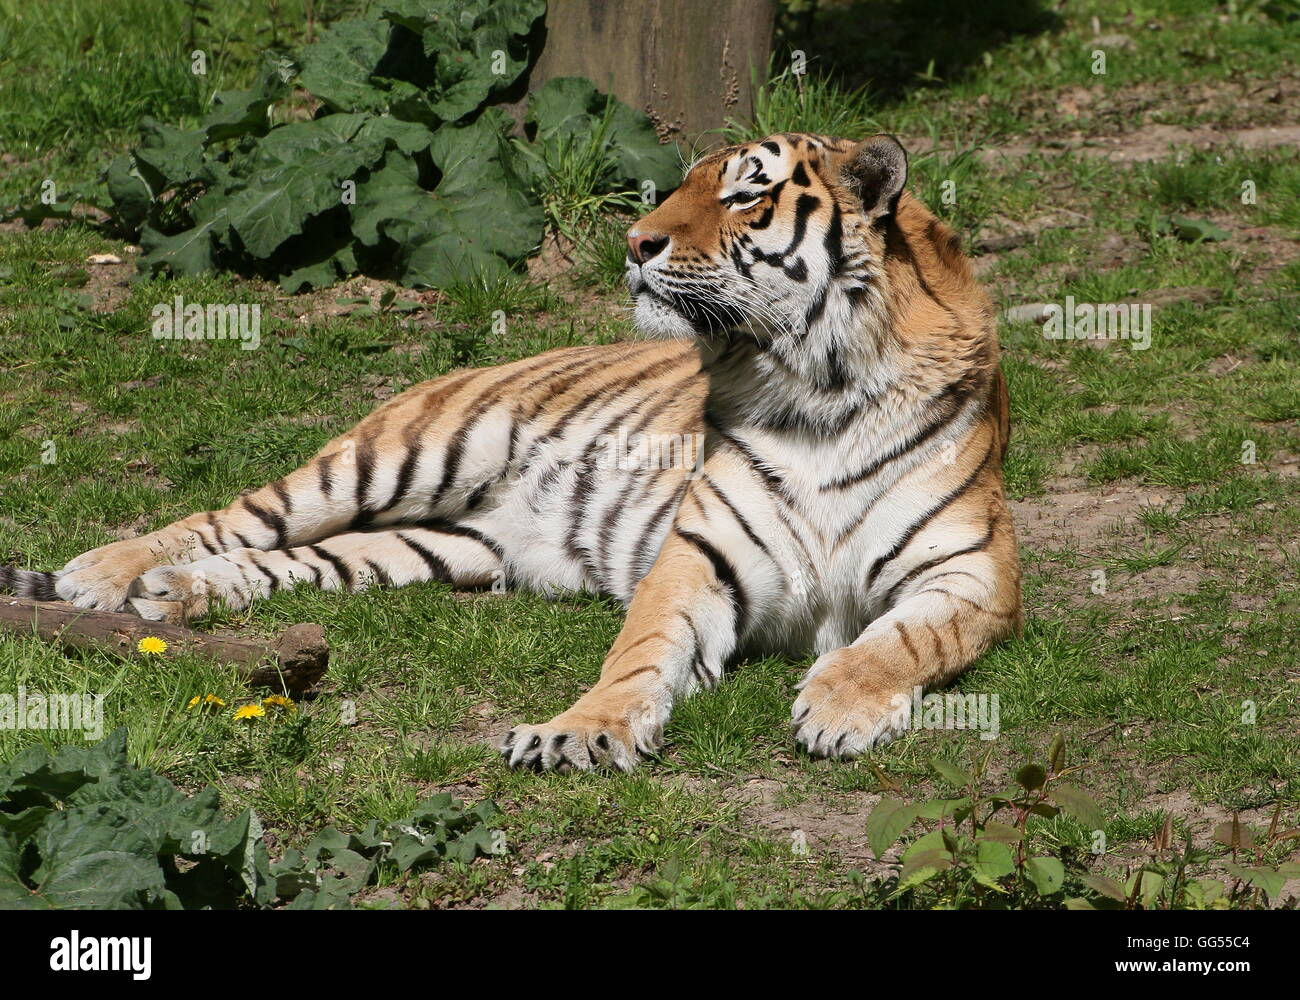 Mature male Siberian or Amur tiger (Panthera tigris altaica) - Stock Image